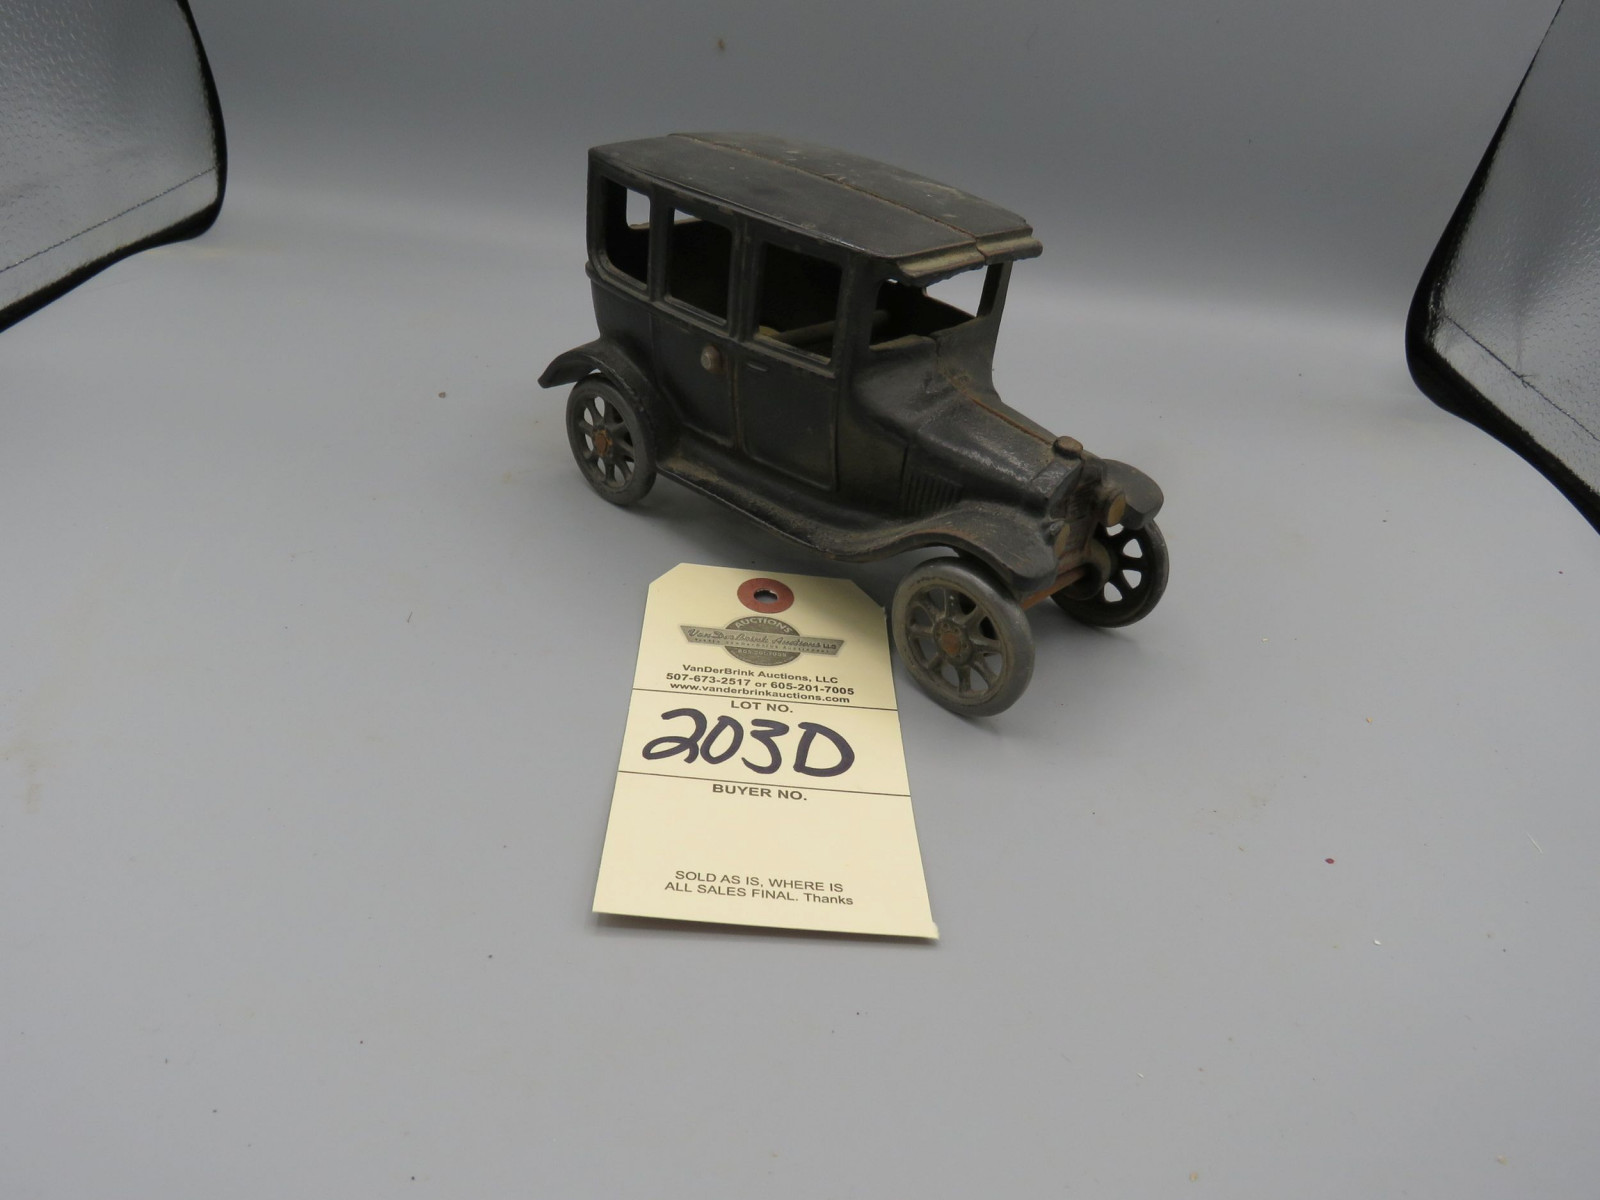 Arcade Cast Iron Chevrolet Superior Sedan @1925 Approx. 7 inches - Image 2